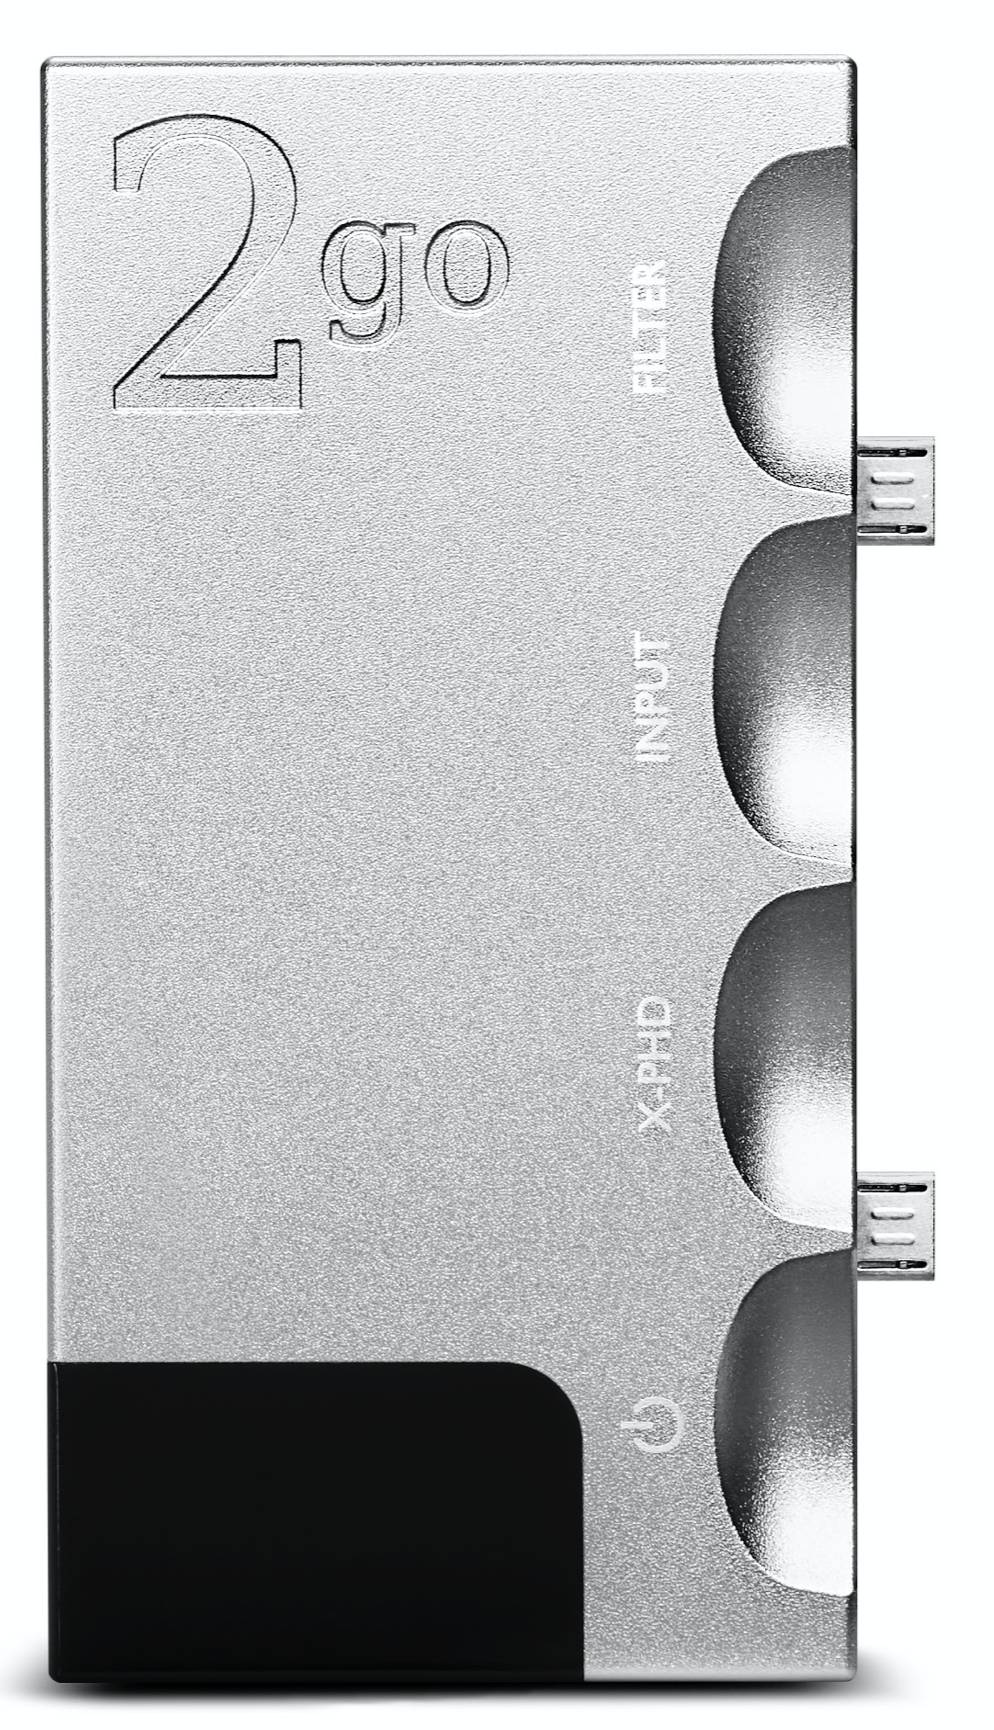 2go and 2yu From Chord Electronics - The Audiophile Man